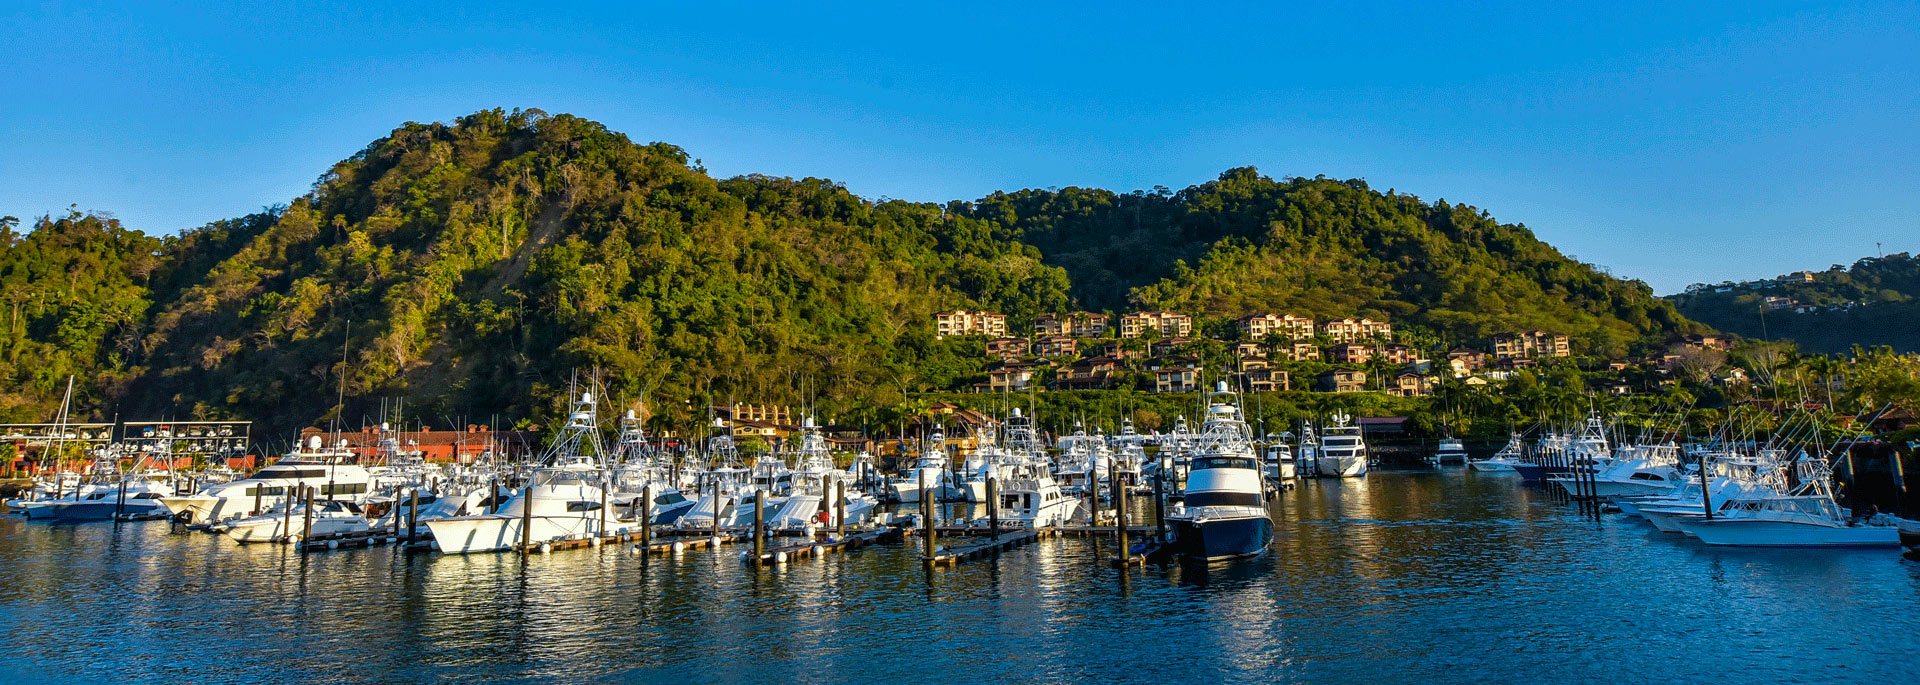 Los Suenos Triple Crown Billfish Tournament Marina